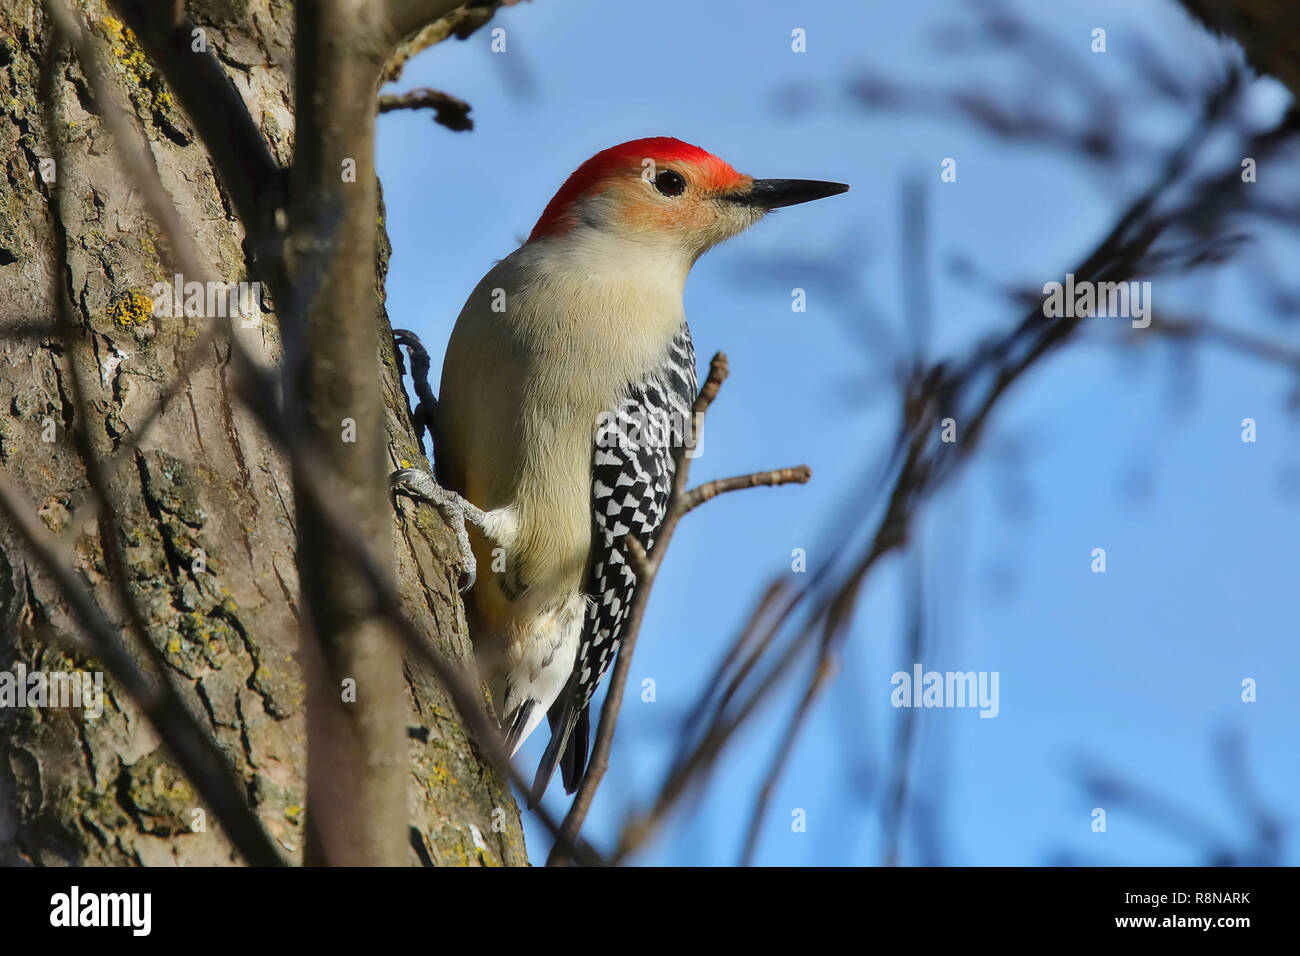 The red-bellied woodpecker (Melanerpes carolinus). Is a medium-sized woodpecker.American bird occurring mainly in the eastern United States. - Stock Image